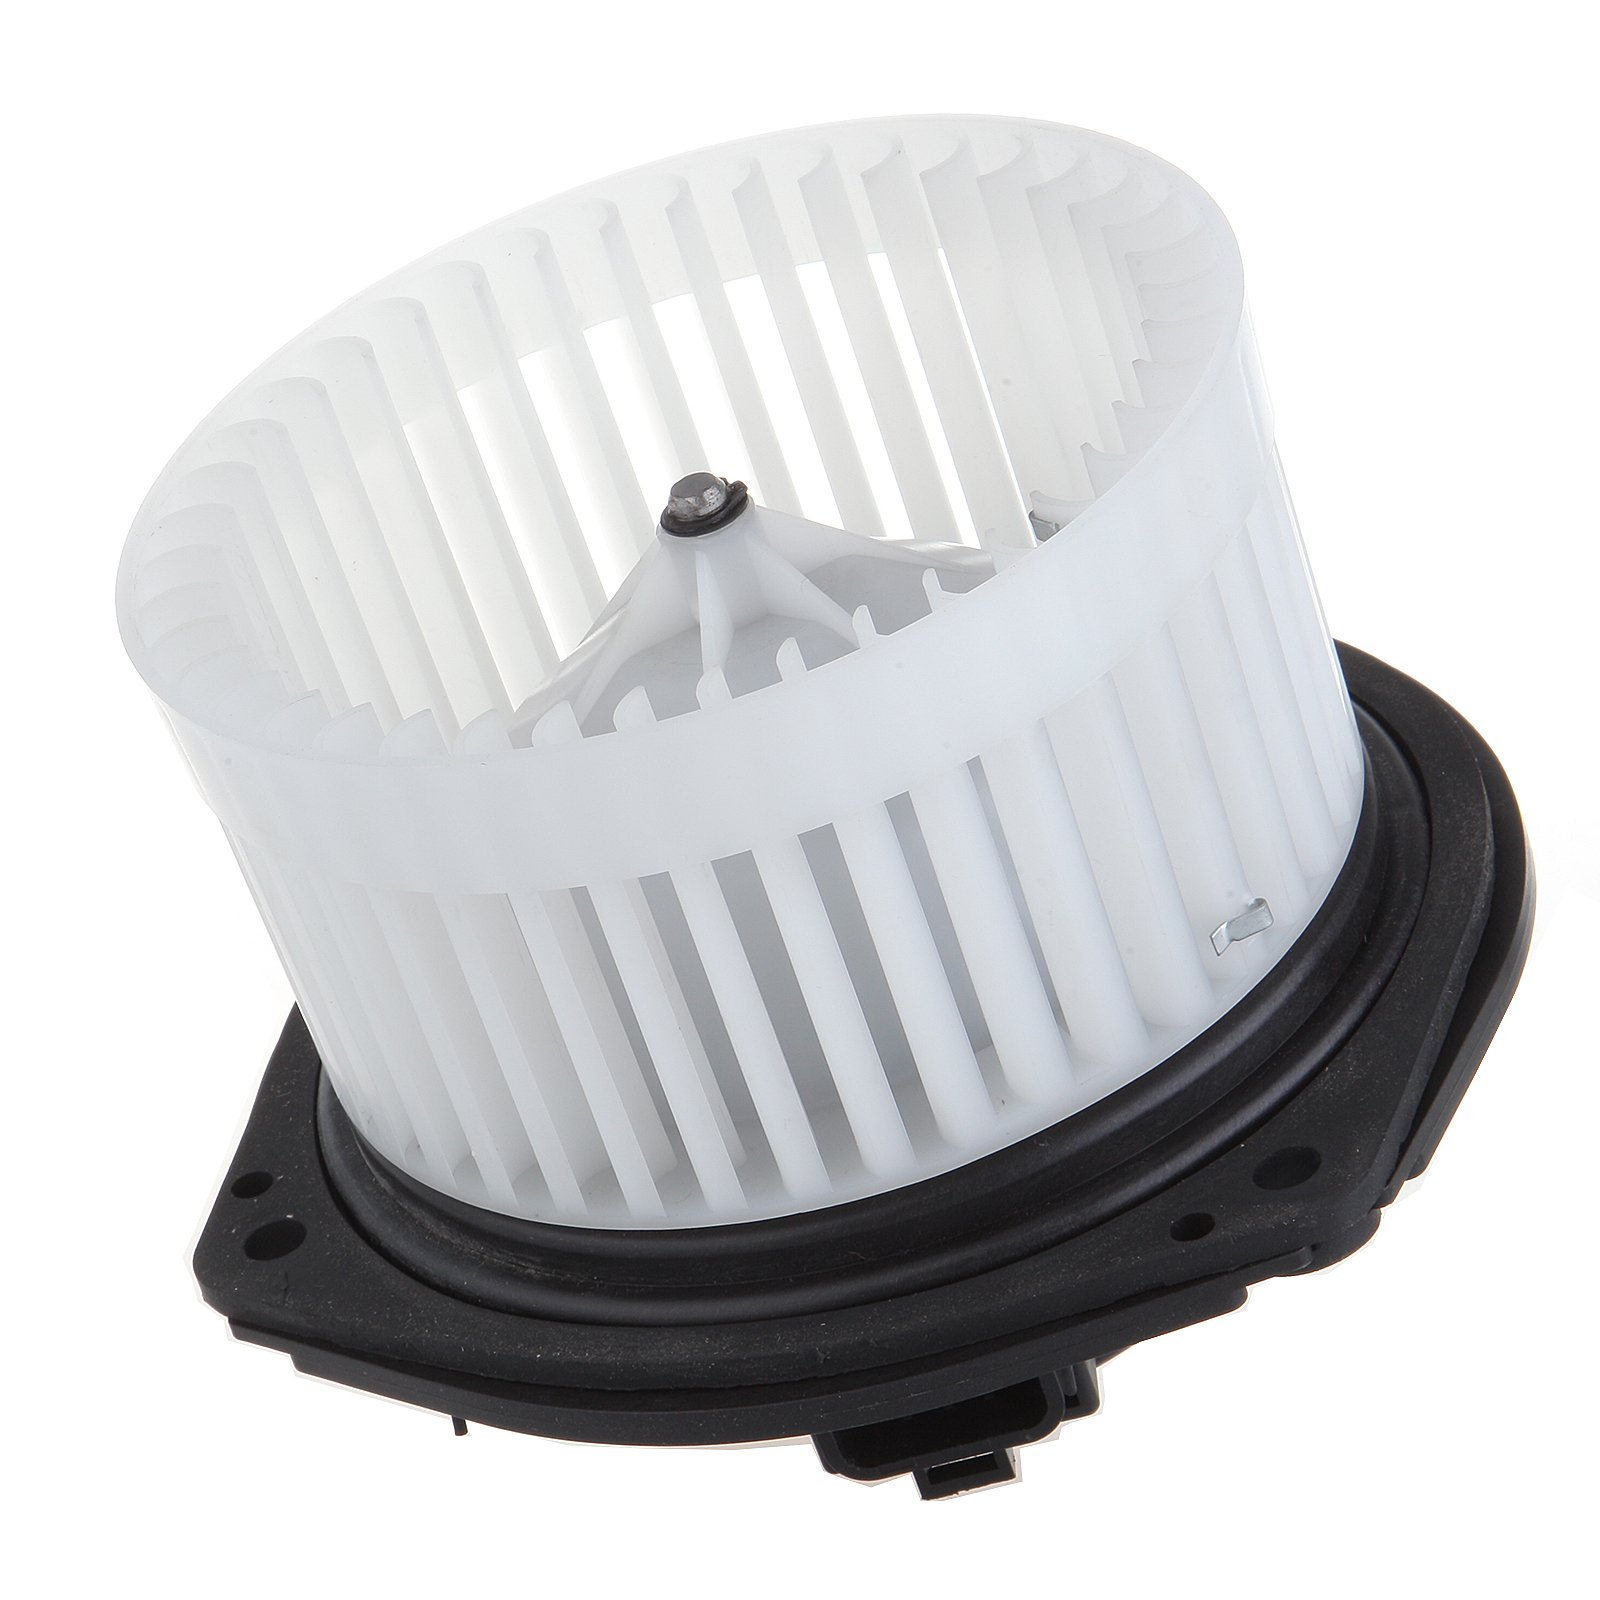 HVAC Plastic Heater Blower Motor ABS w/Fan Cage ECCPP for 2002-2005 Buick LeSabre /2002-2005 Cadillac Deville /2002-2004 Cadillac Seville /2002-2003 Olds Aurora /2002-2005 Pontiac Bonneville